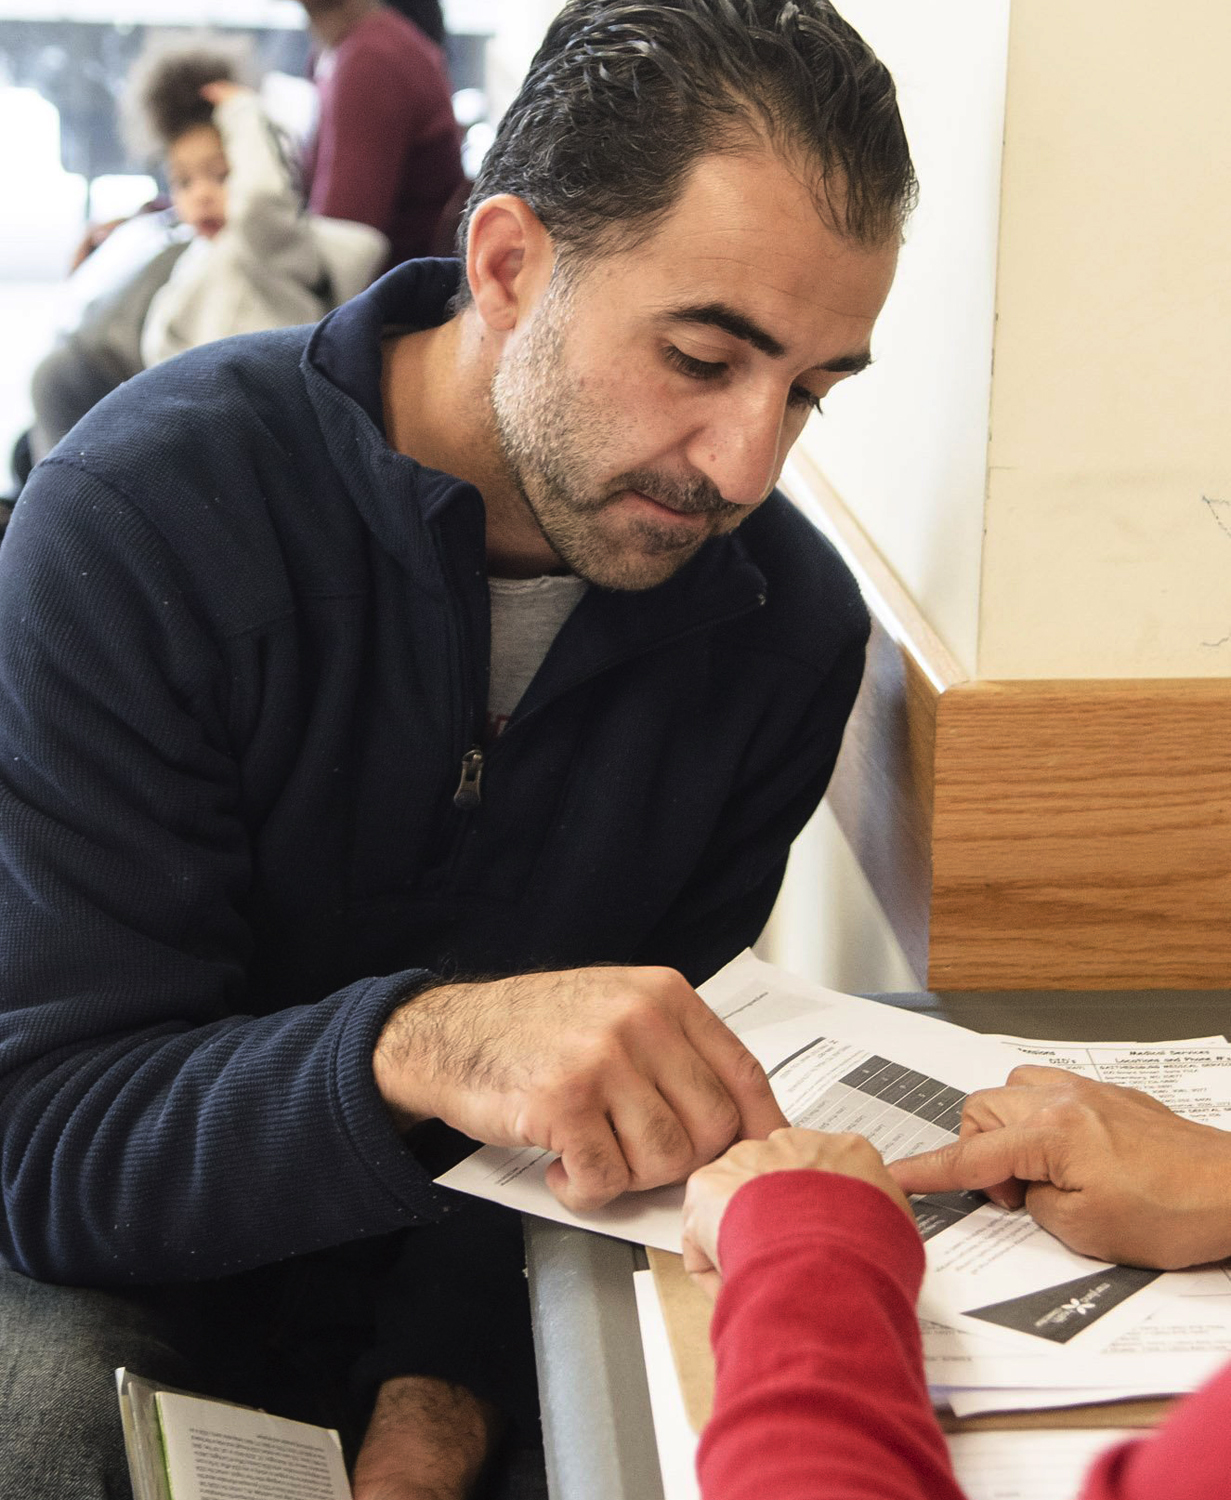 Martha Lopez of Community Clinics, Inc [R] explains to Amine Ashkar(L) of Burtonville, Md benefits that he and his family would receive under the new ...